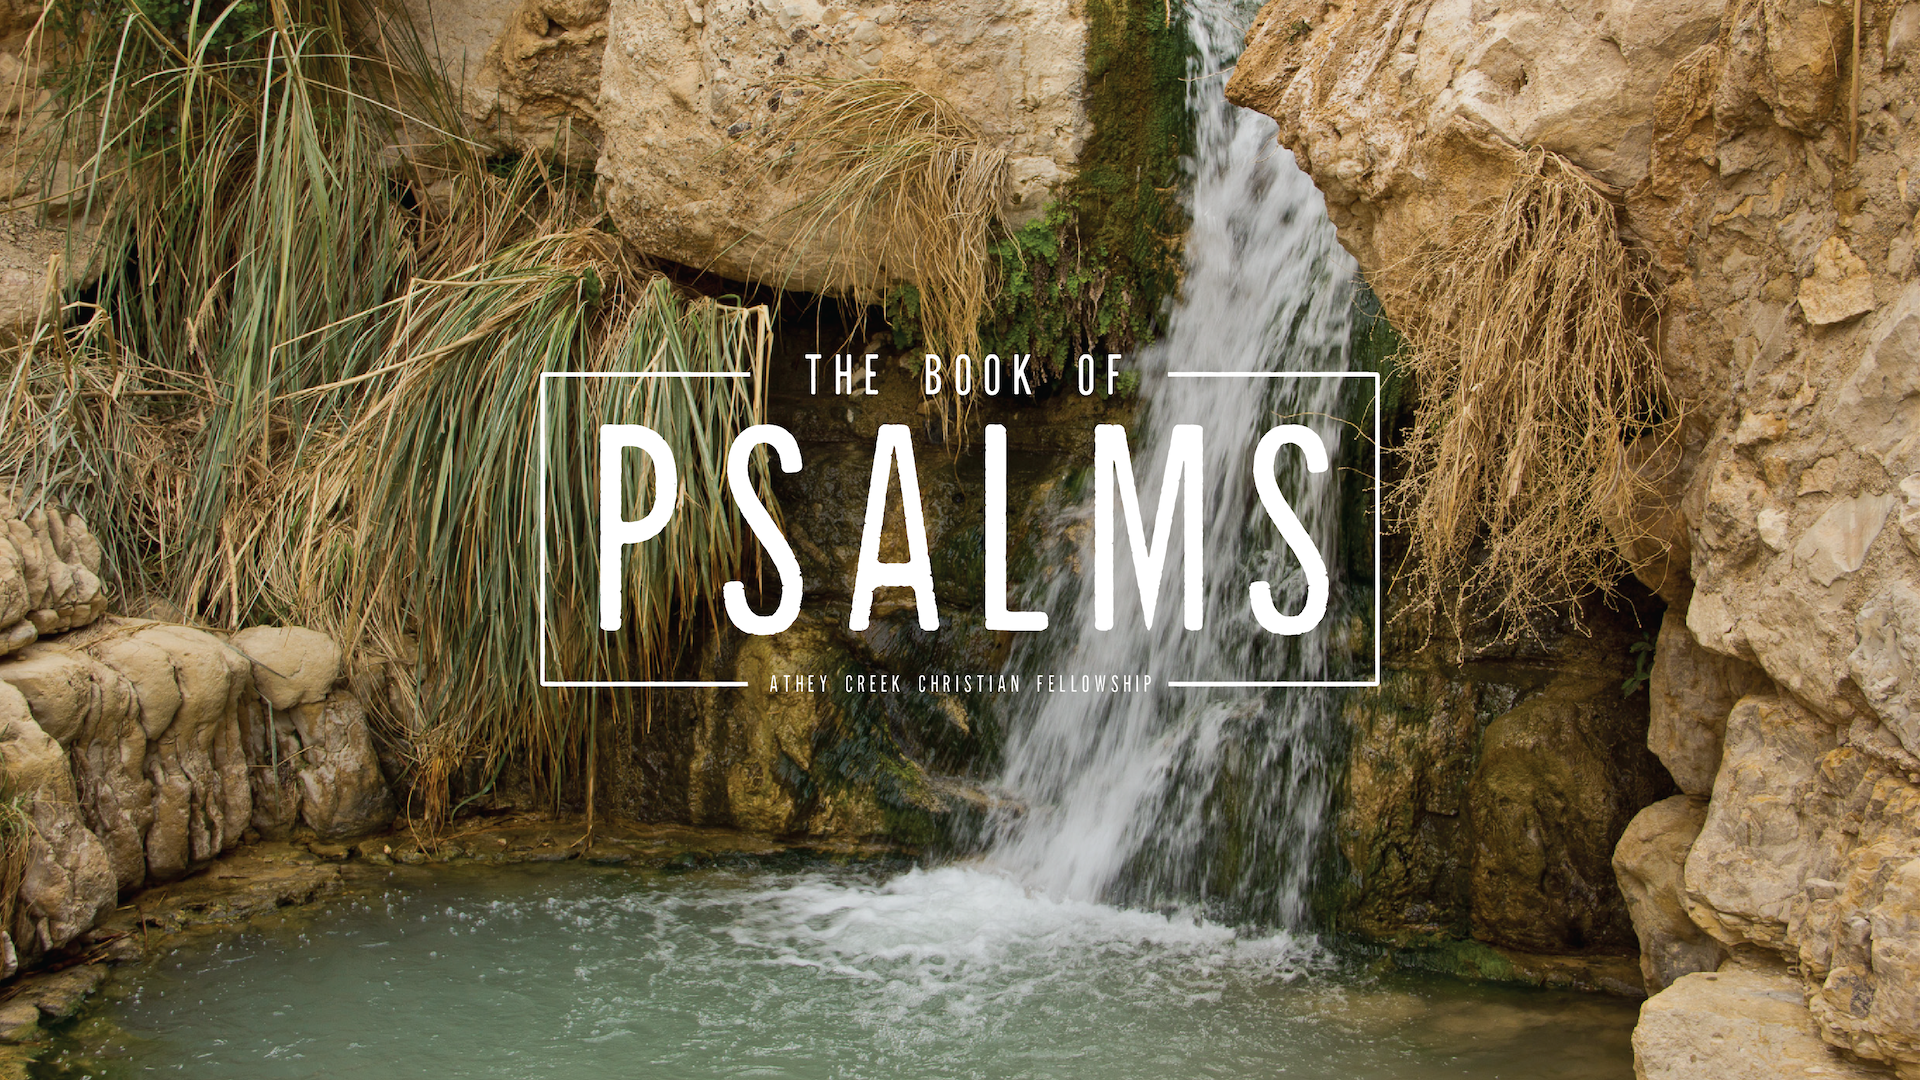 Poster forThrough the Bible (Psalms 83-85)